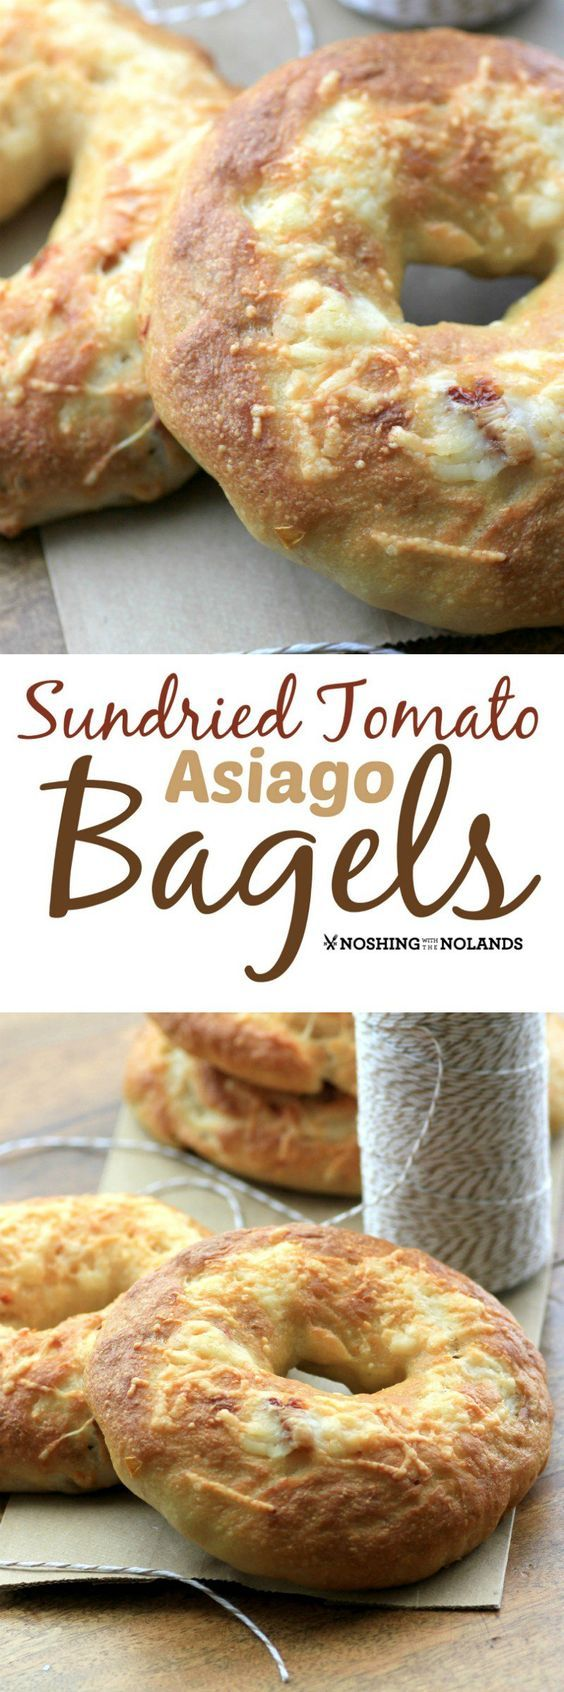 Sundried Tomato Asiago Bagels by Noshing With The Nolands are a scrumptious addition to your morning!  Enjoy the savory flavors fresh from the oven!